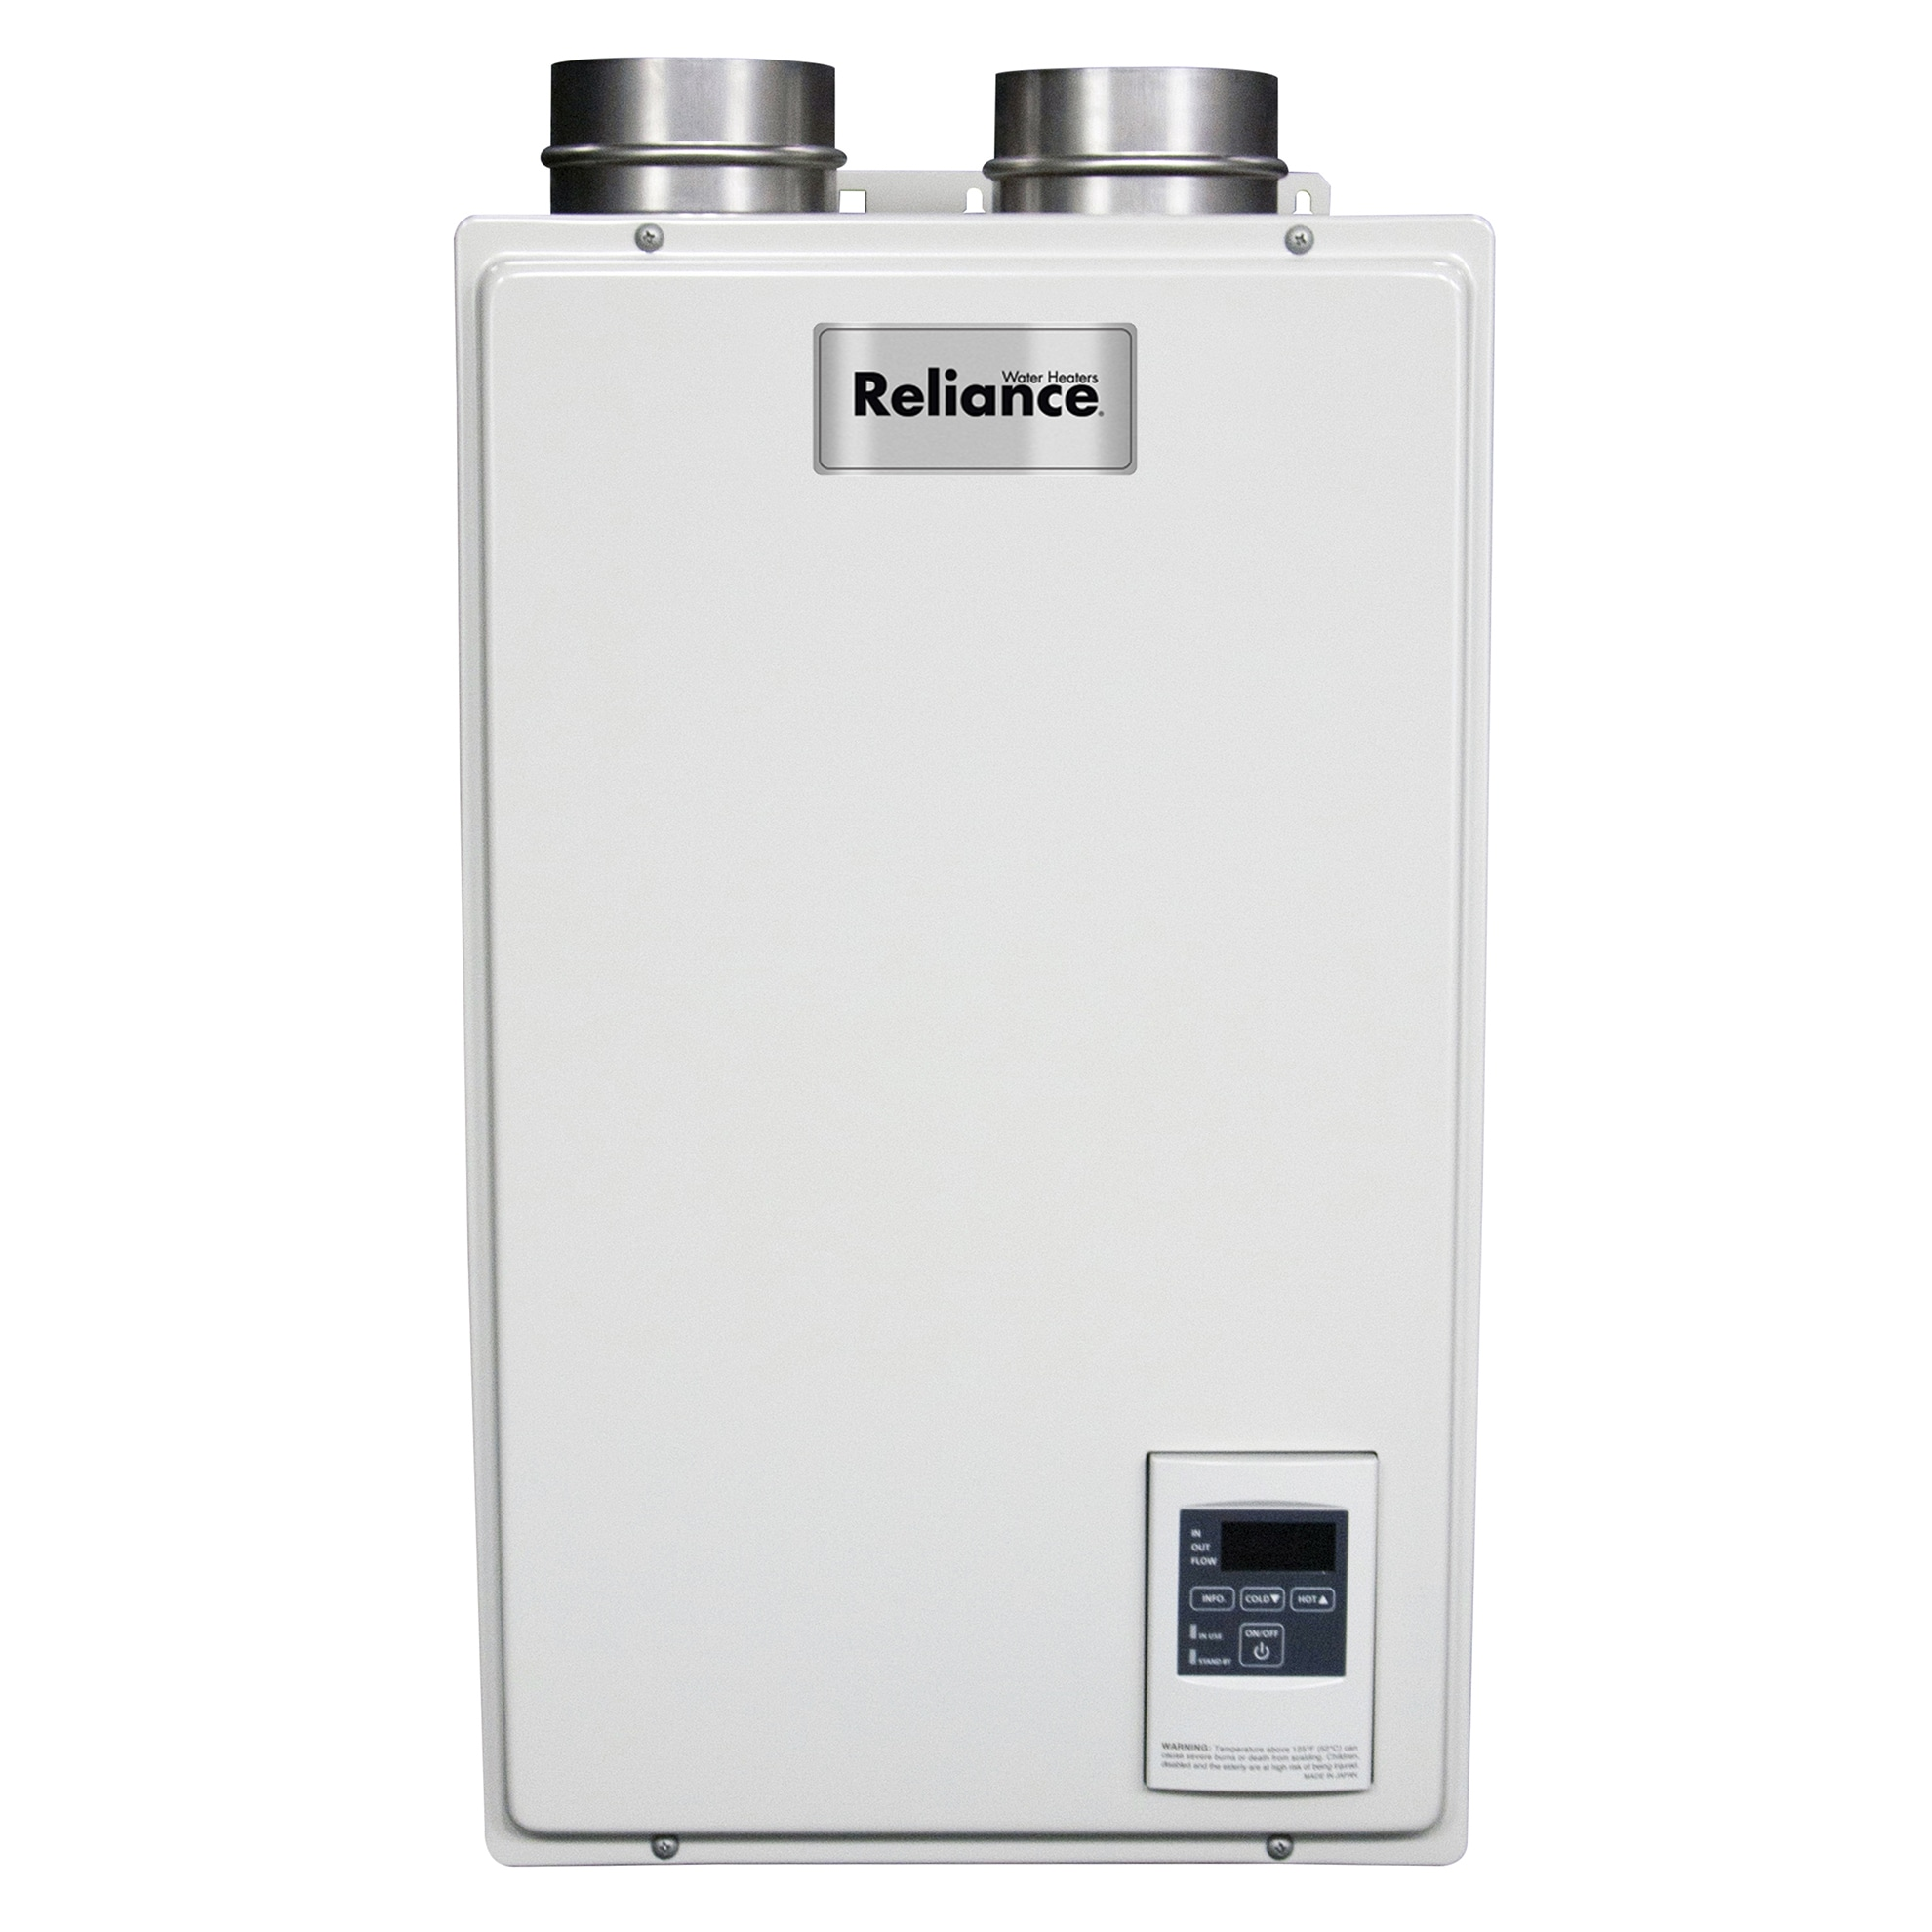 reliance ts140 gih 120 000 btu natural gas indoor tankless gas water heater ebay. Black Bedroom Furniture Sets. Home Design Ideas